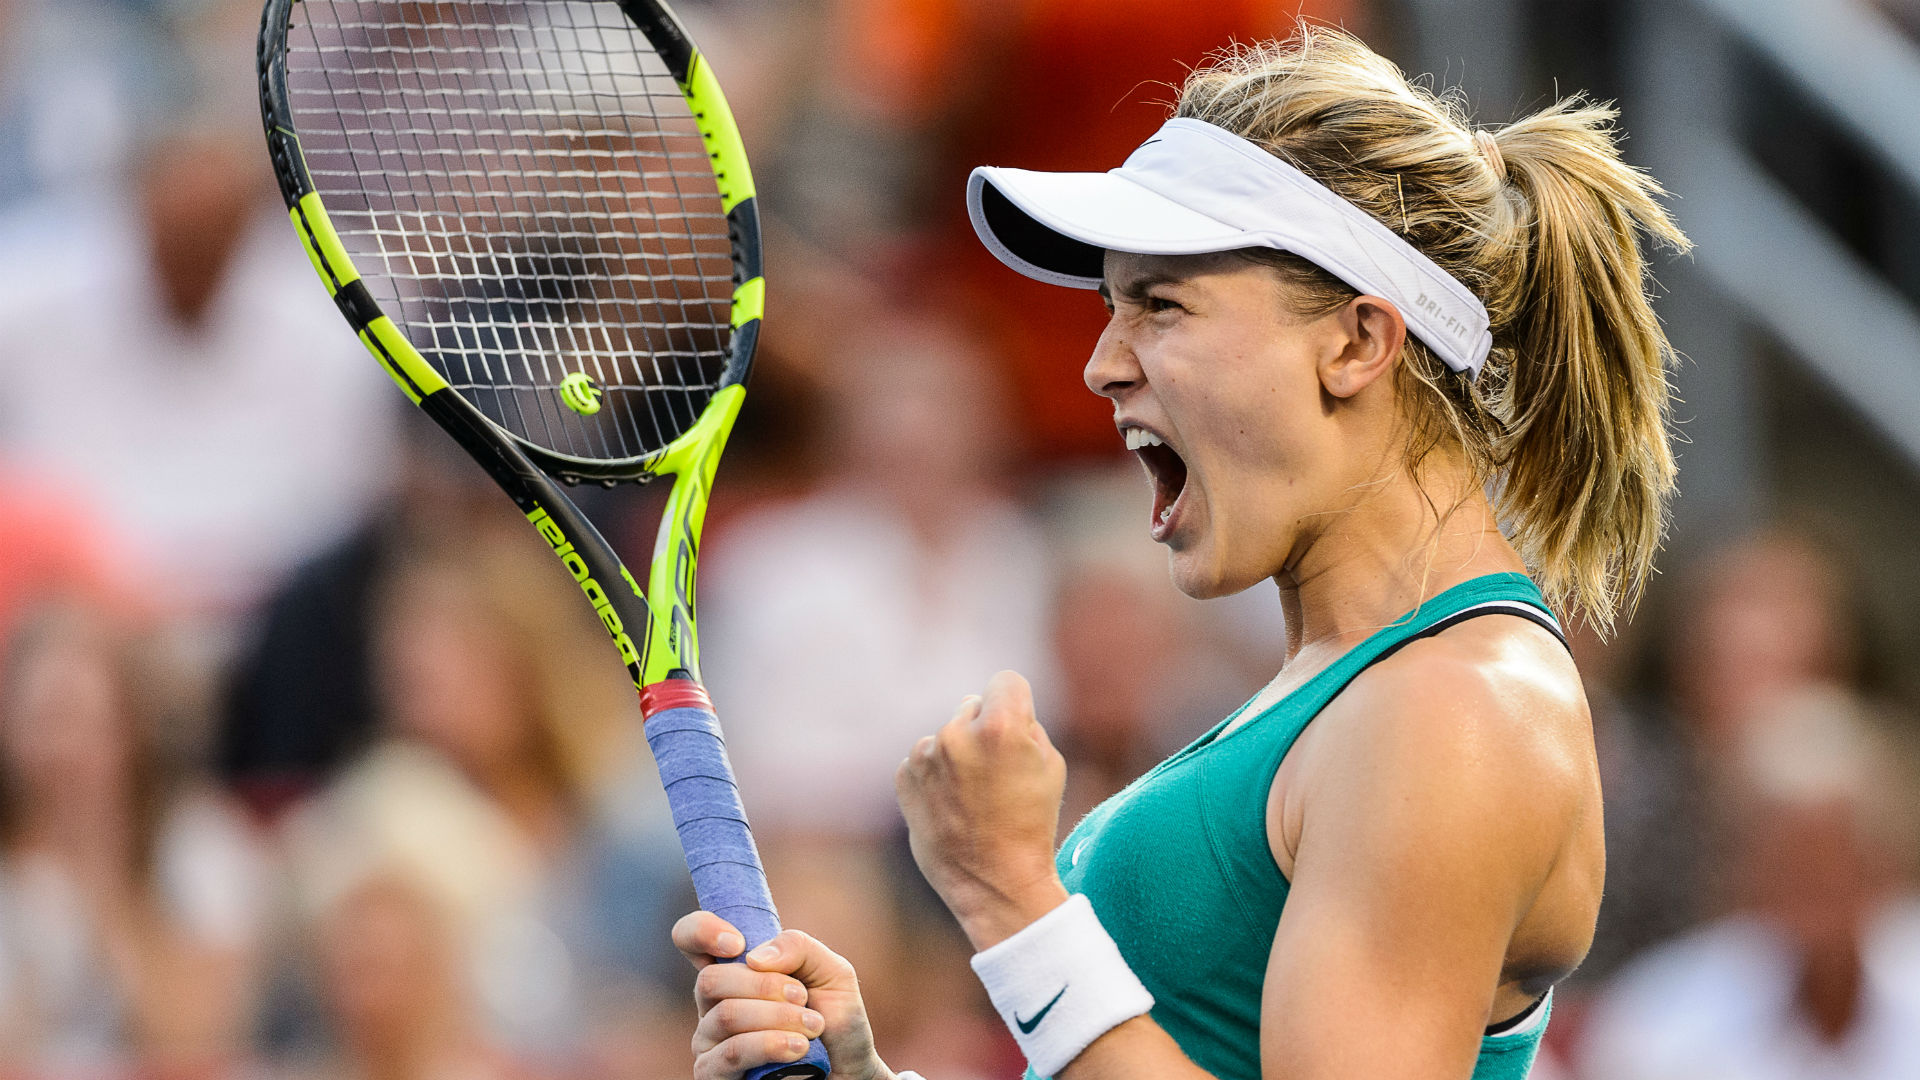 Canada's Bouchard retires from Swiss Open semifinal against Cornet with injury